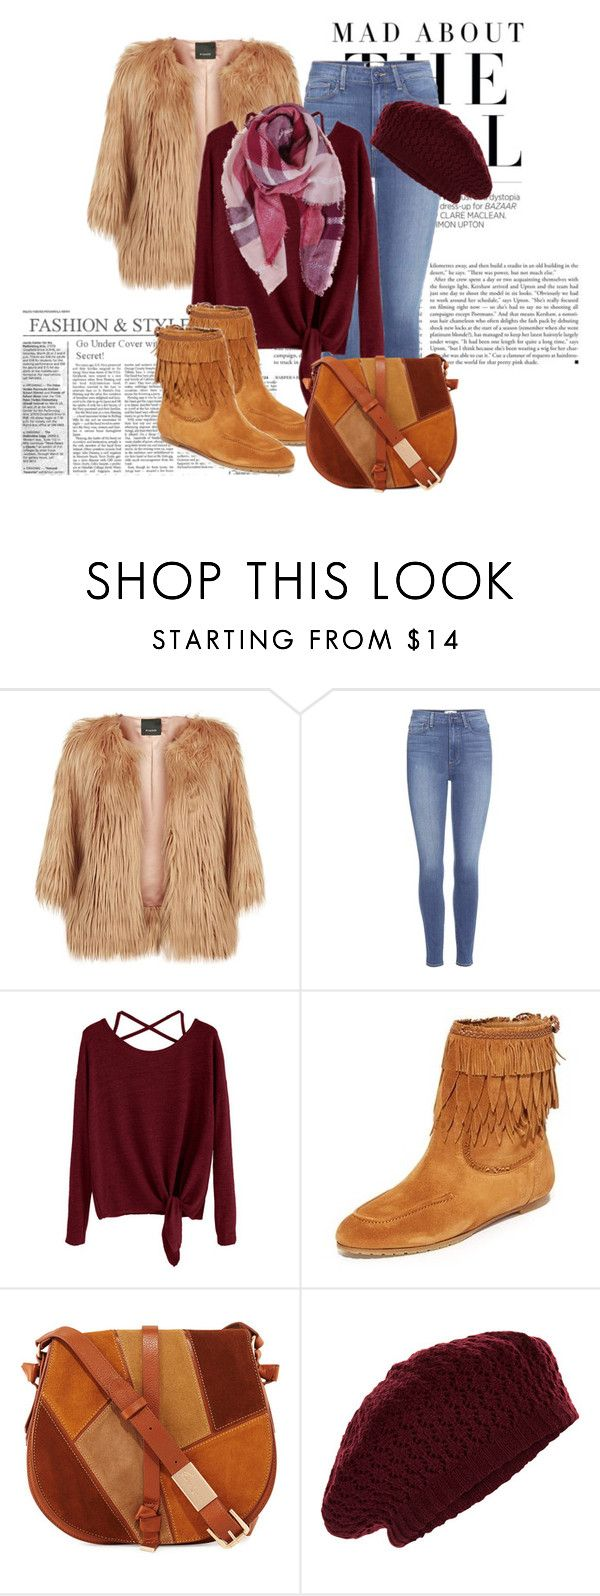 """Faux fur jacket"" by janie-xox ❤ liked on Polyvore featuring Kershaw, Pinko, Paige Denim, Aquazzura, Foley + Corinna, Accessorize and Humble Chic"